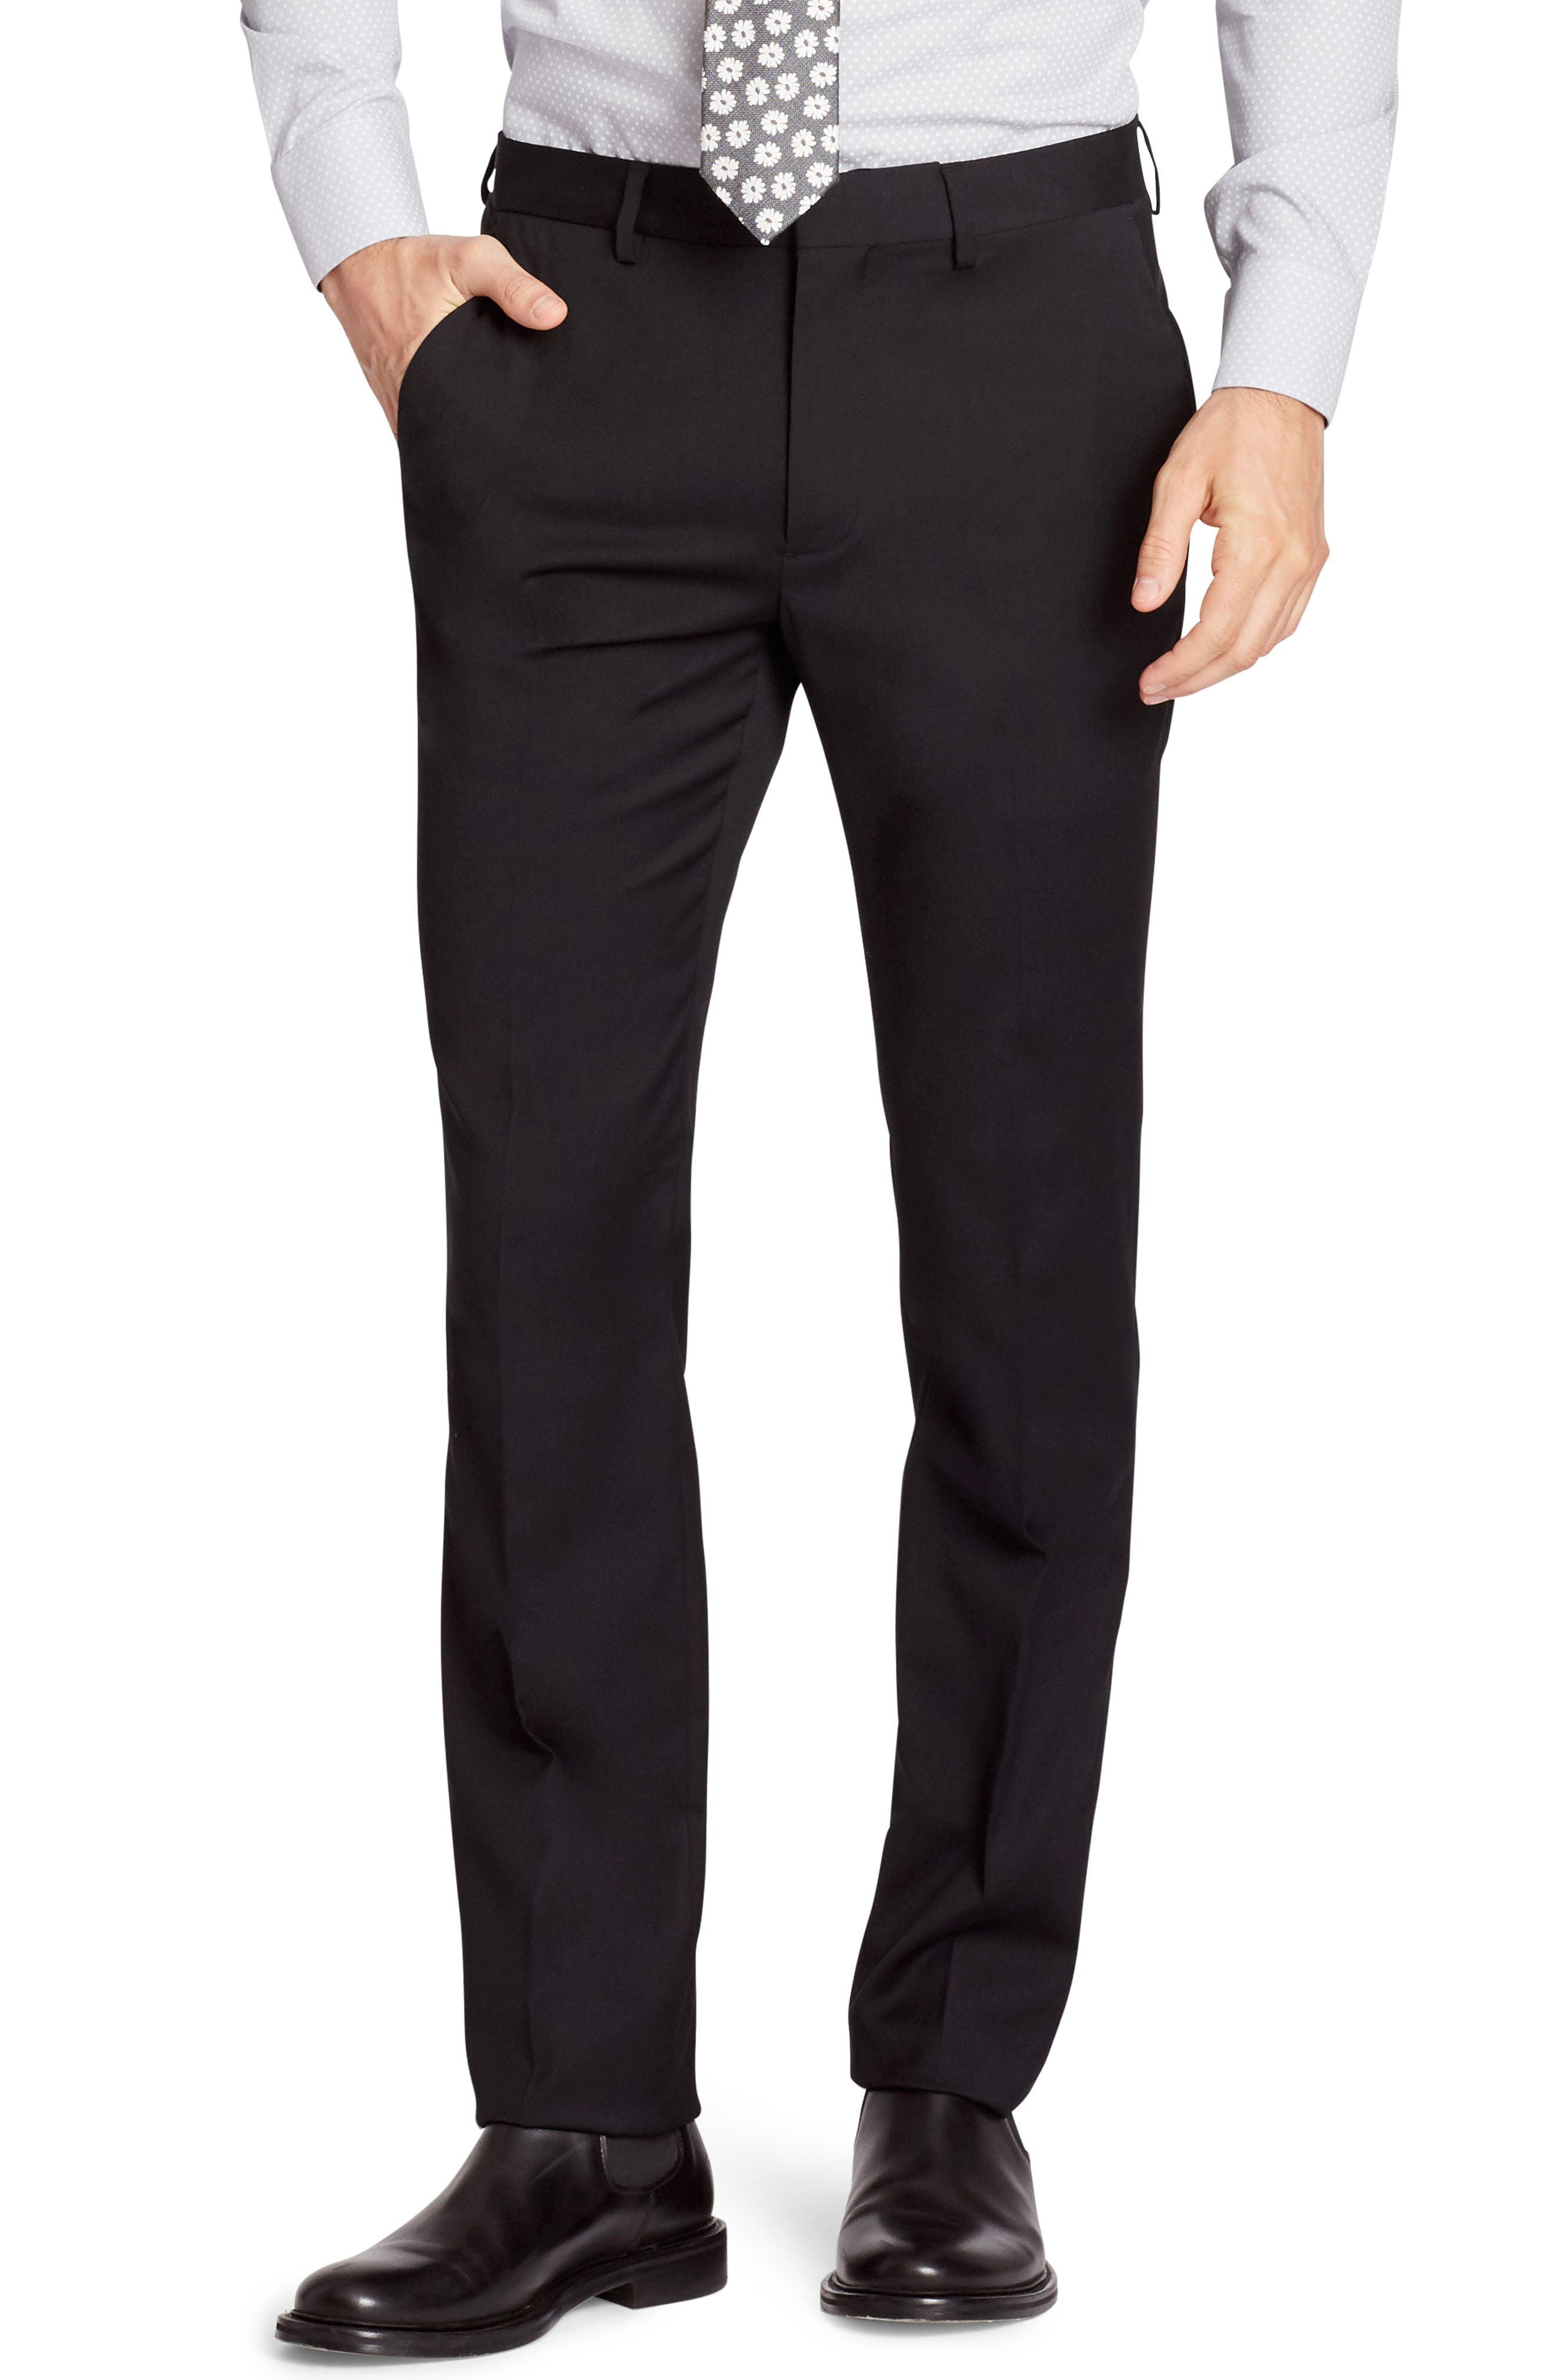 Bonobos Jetsetter Flat Front Stretch Wool Trousers (Tall)